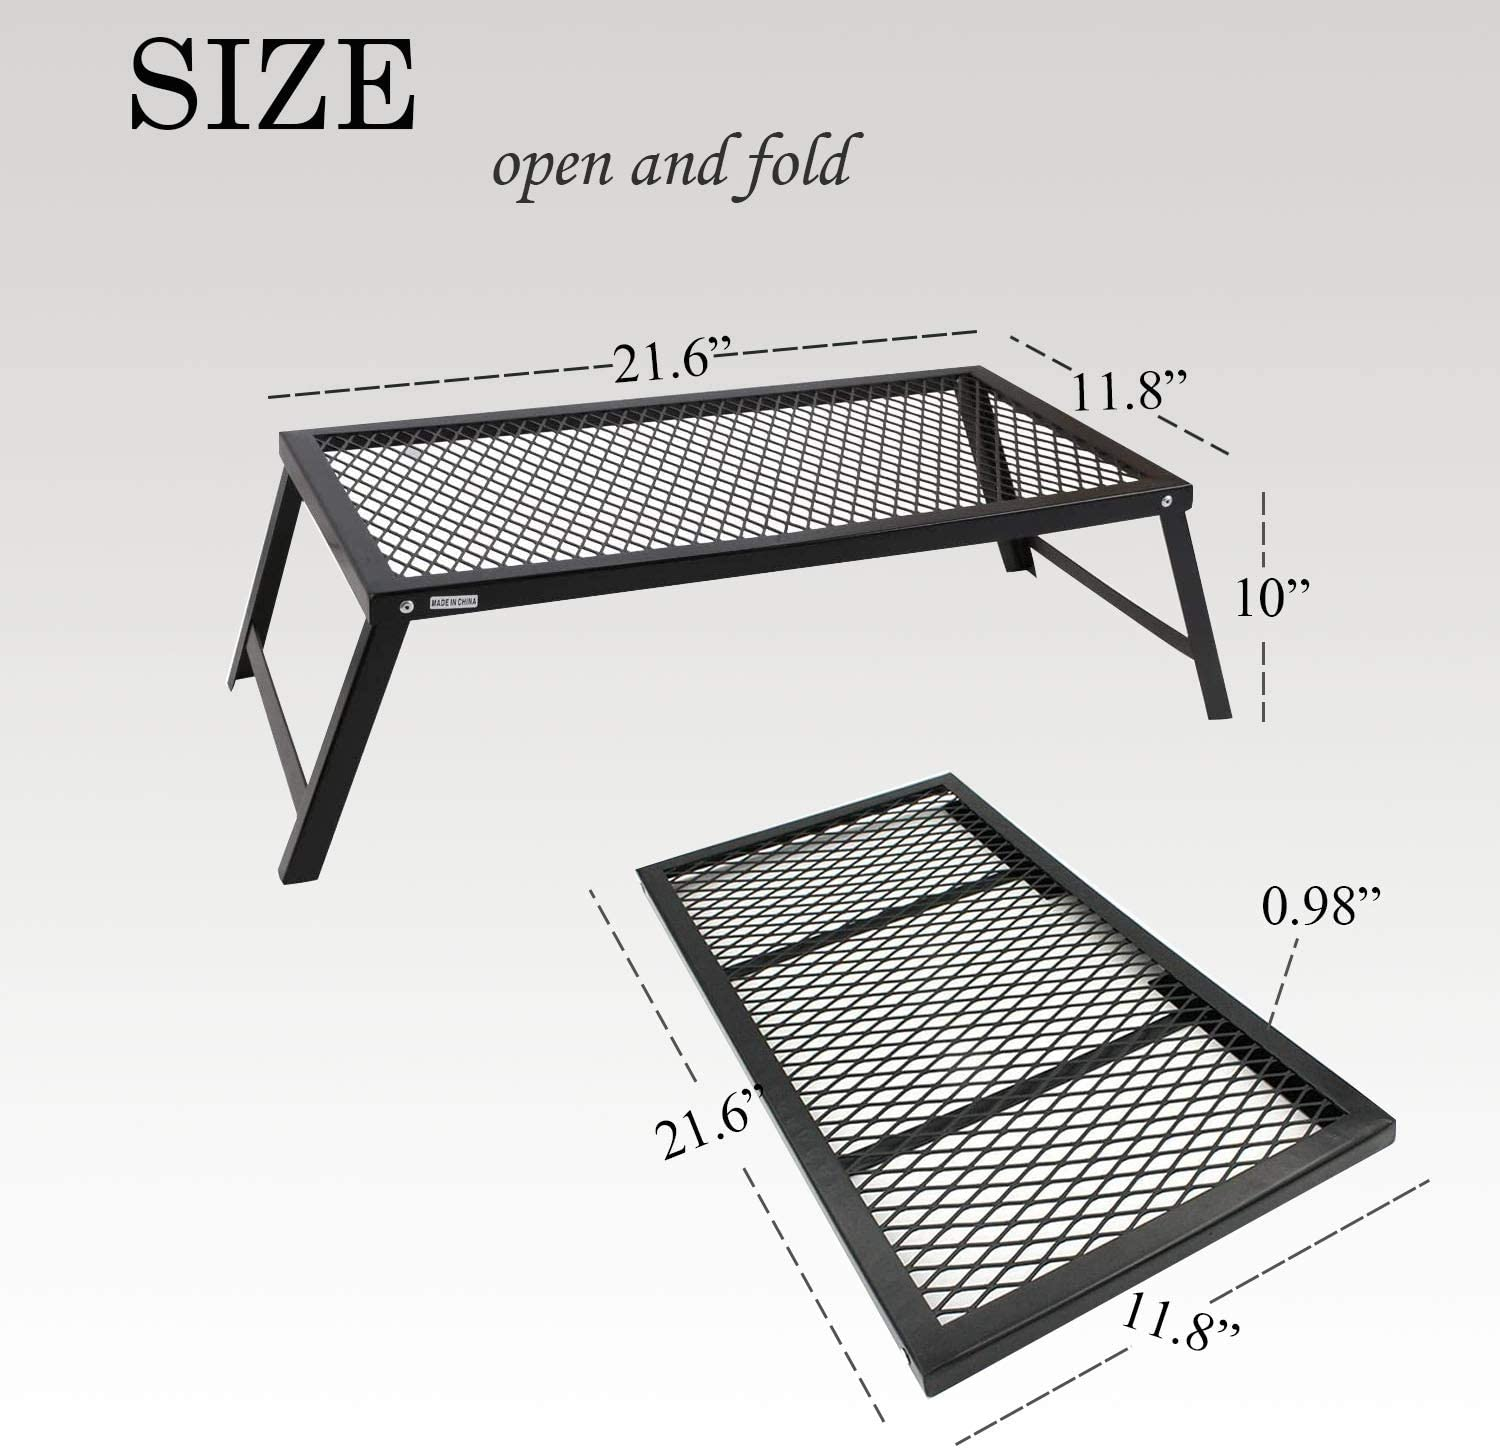 21.6X11.8 . YOLER Folding Camping Grills Heavy Duty Steel Grate for Outdoor Table Backpacking Hiking Traveling Picnic BBQ